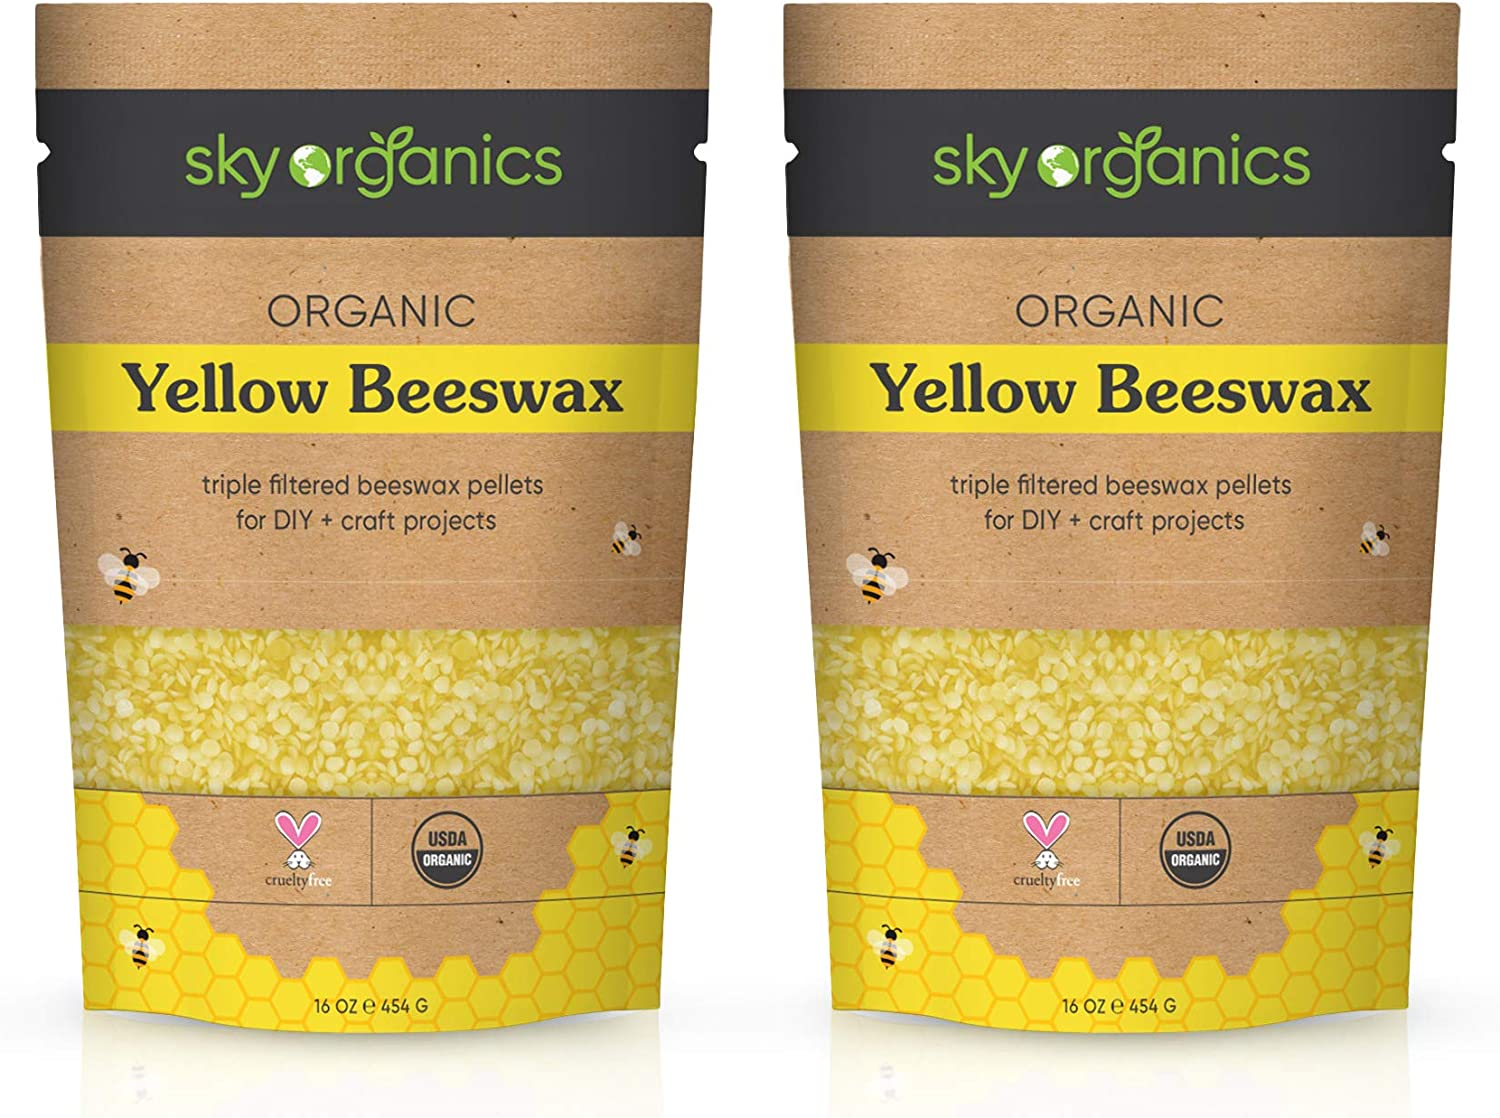 Sky Organics USDA Organic Yellow Beeswax Pellets (2lb) Pure Bees Wax No Toxic Pesticides or Chemicals - 3 x Filtered, Easy Melt Pastilles- for DIY, Candles, Skin Care, Lip Balm